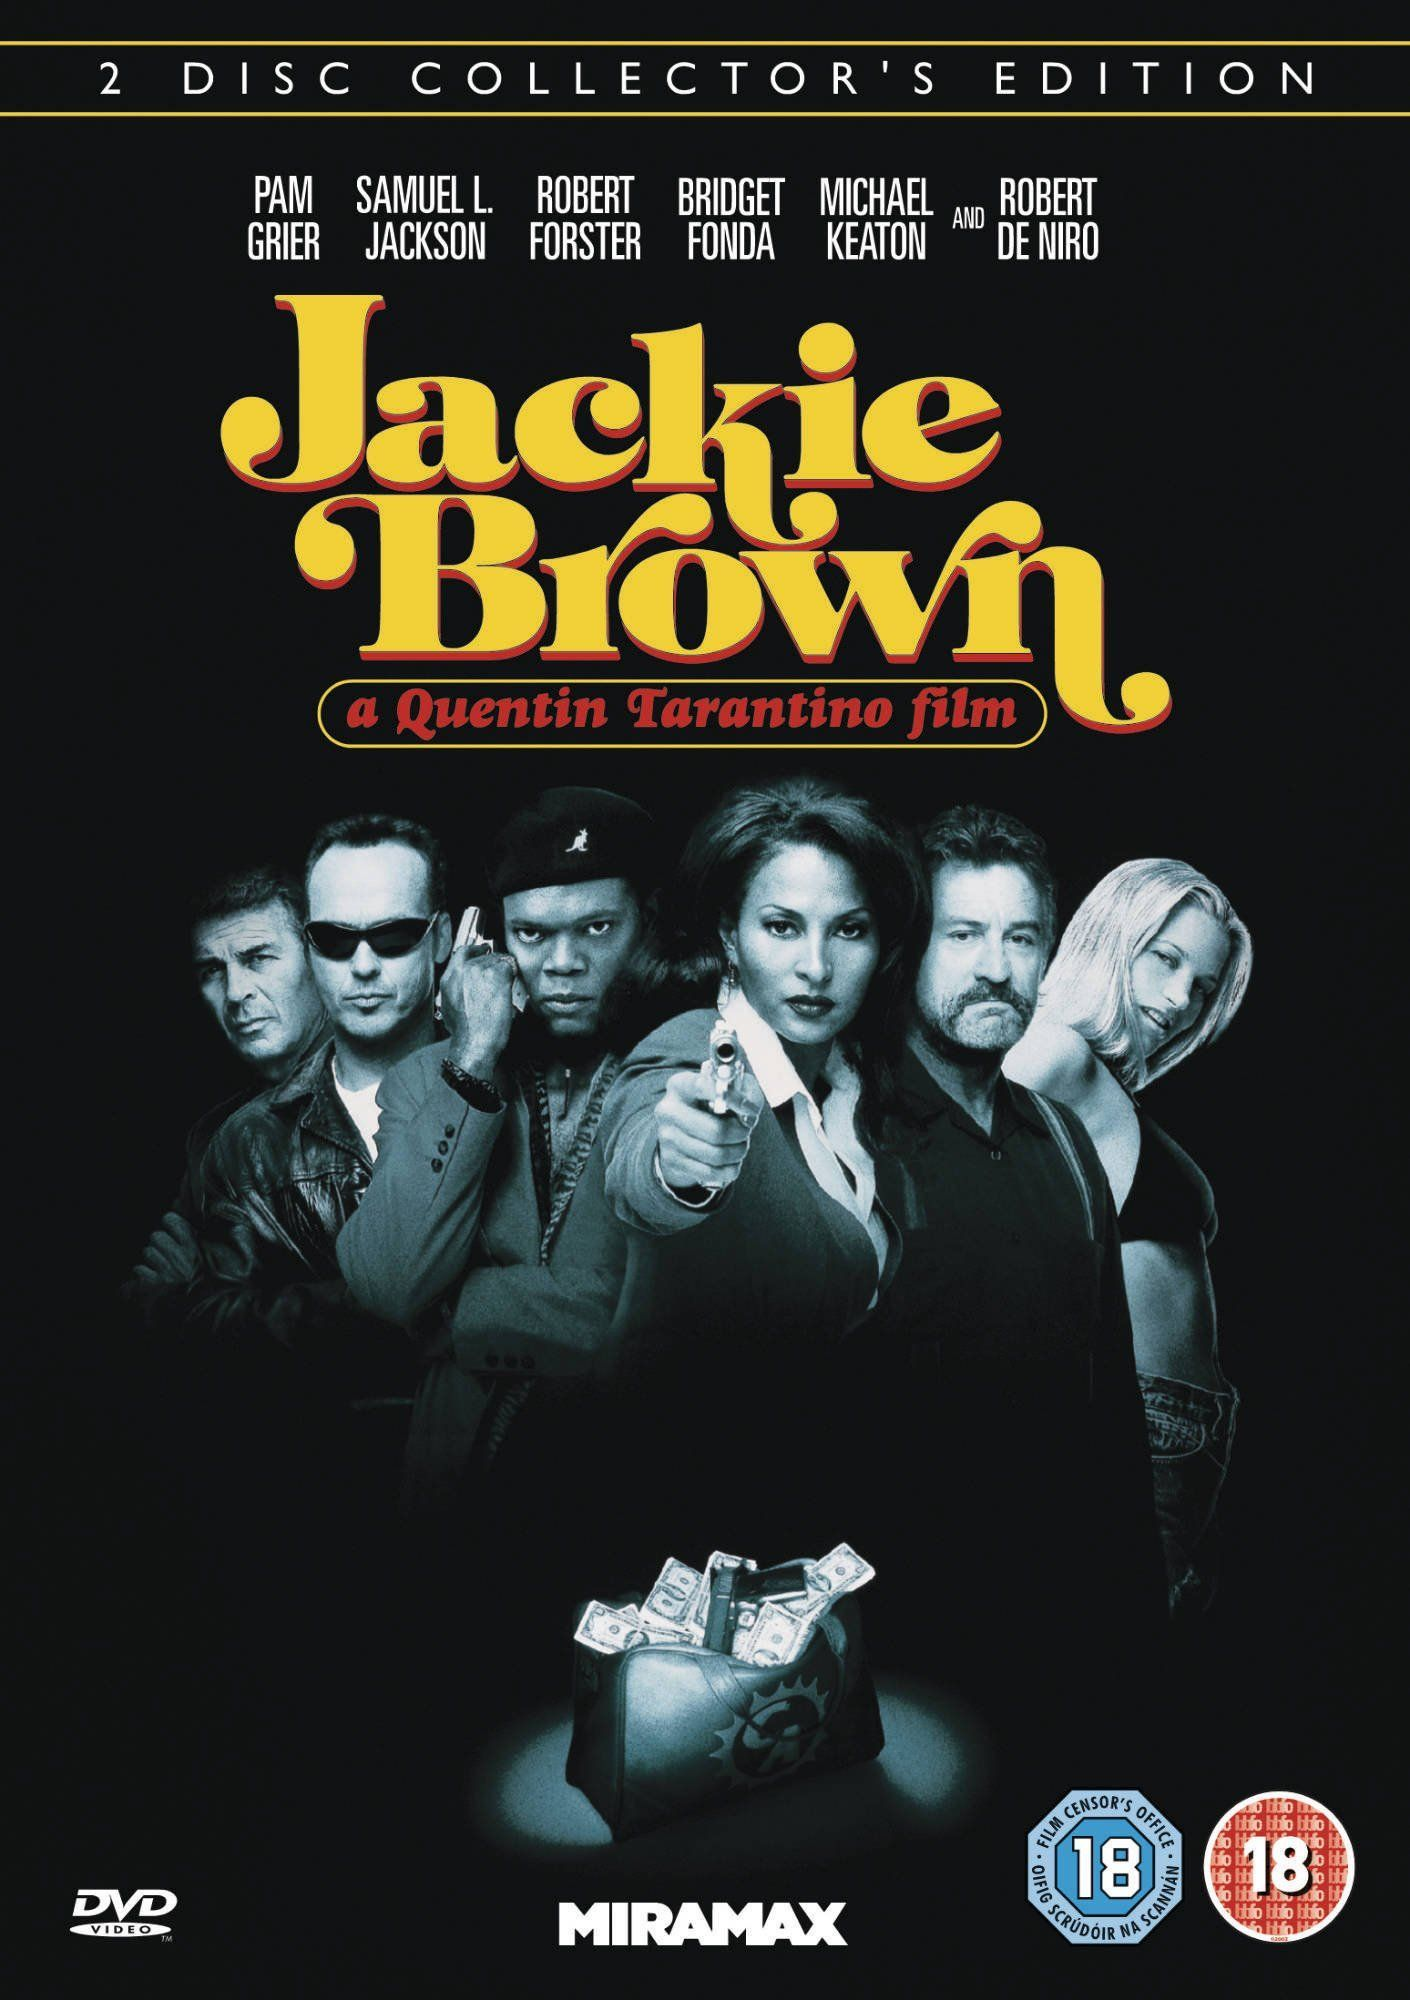 Jackie Brown 1997 based on the novel by Elmore Leonard directed by Quentin Tarantino starring Pa